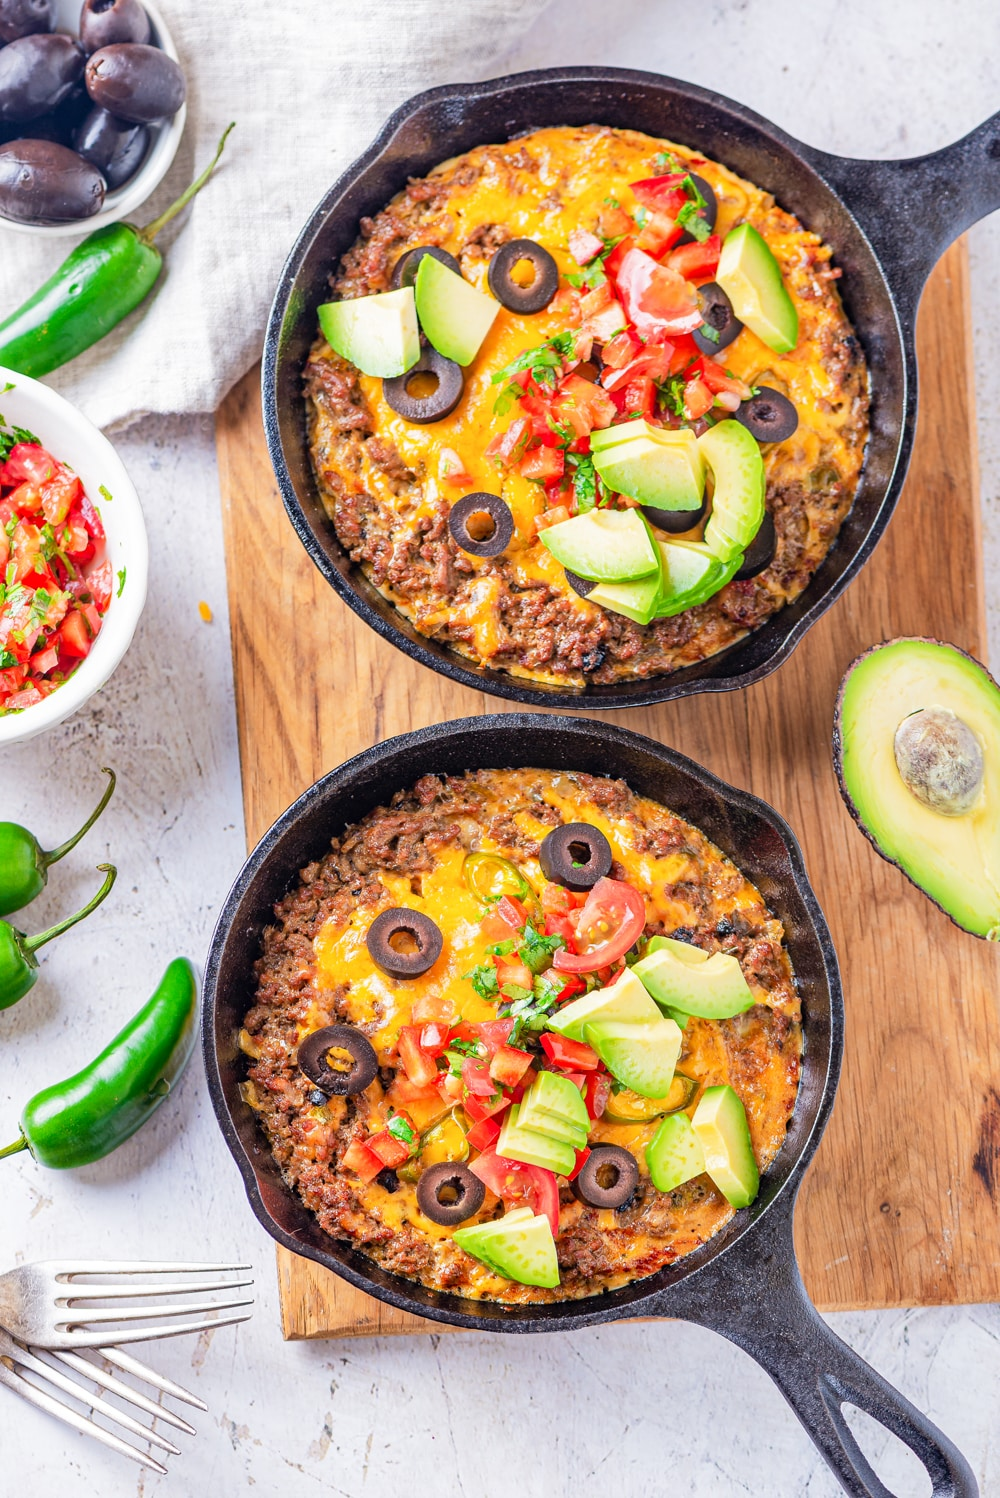 2 Cast iron skillets filled with ground beef, cheese, salsa, and pieces of avocado.